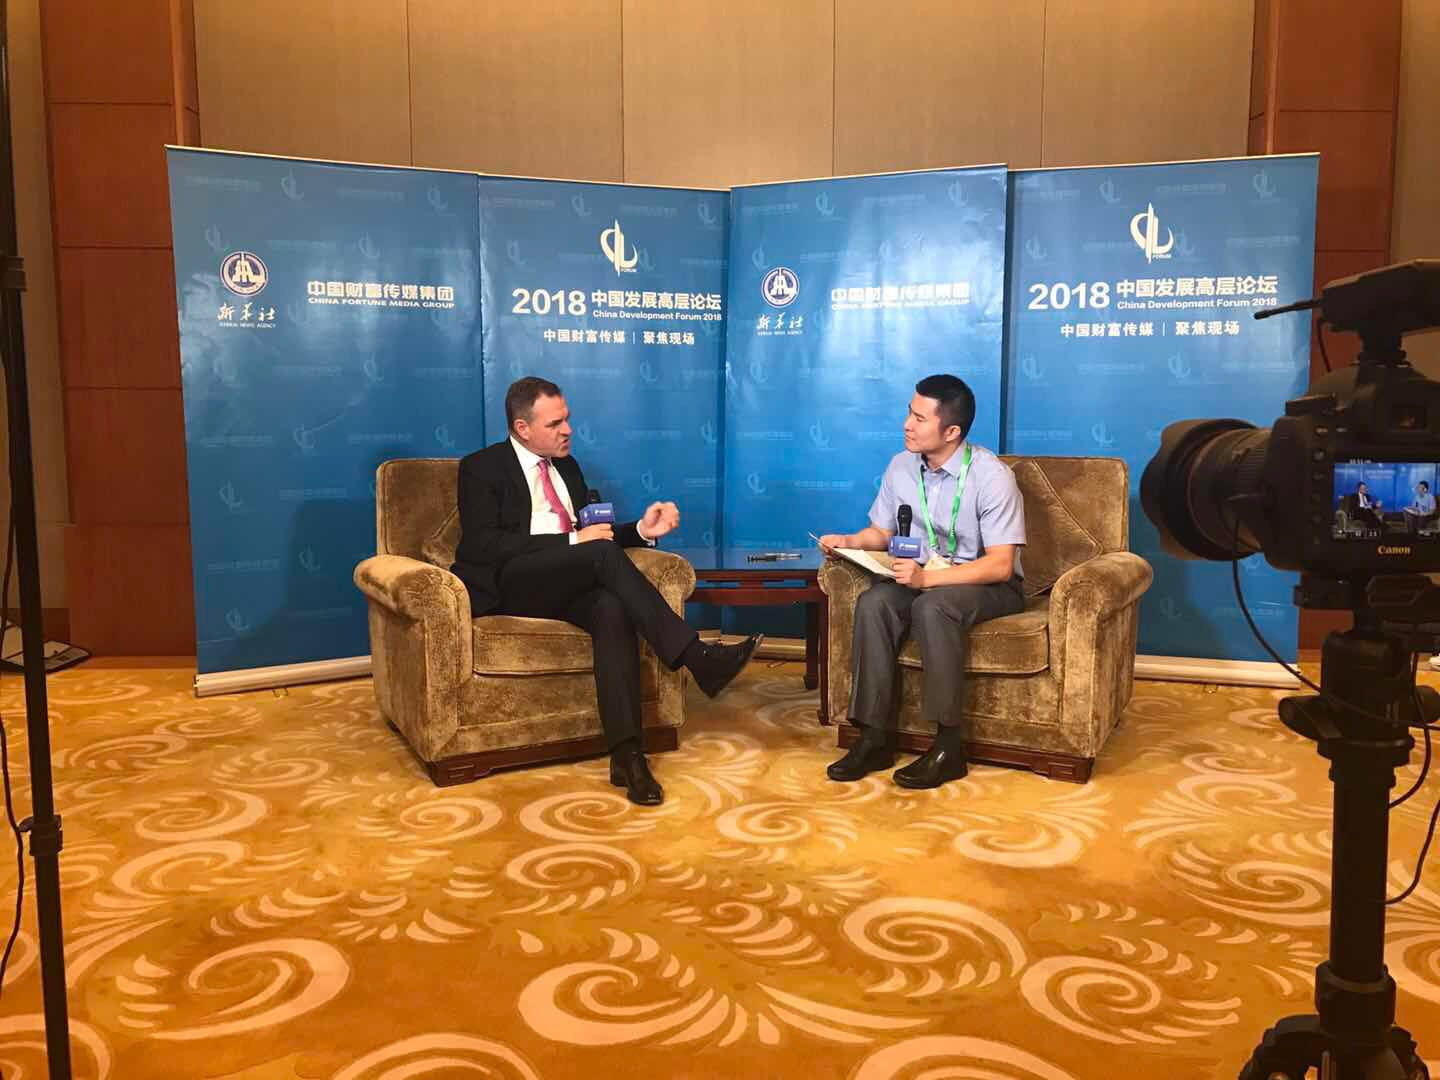 Interview: China's financial opening-up strategy proves wise, says U.S. scholar